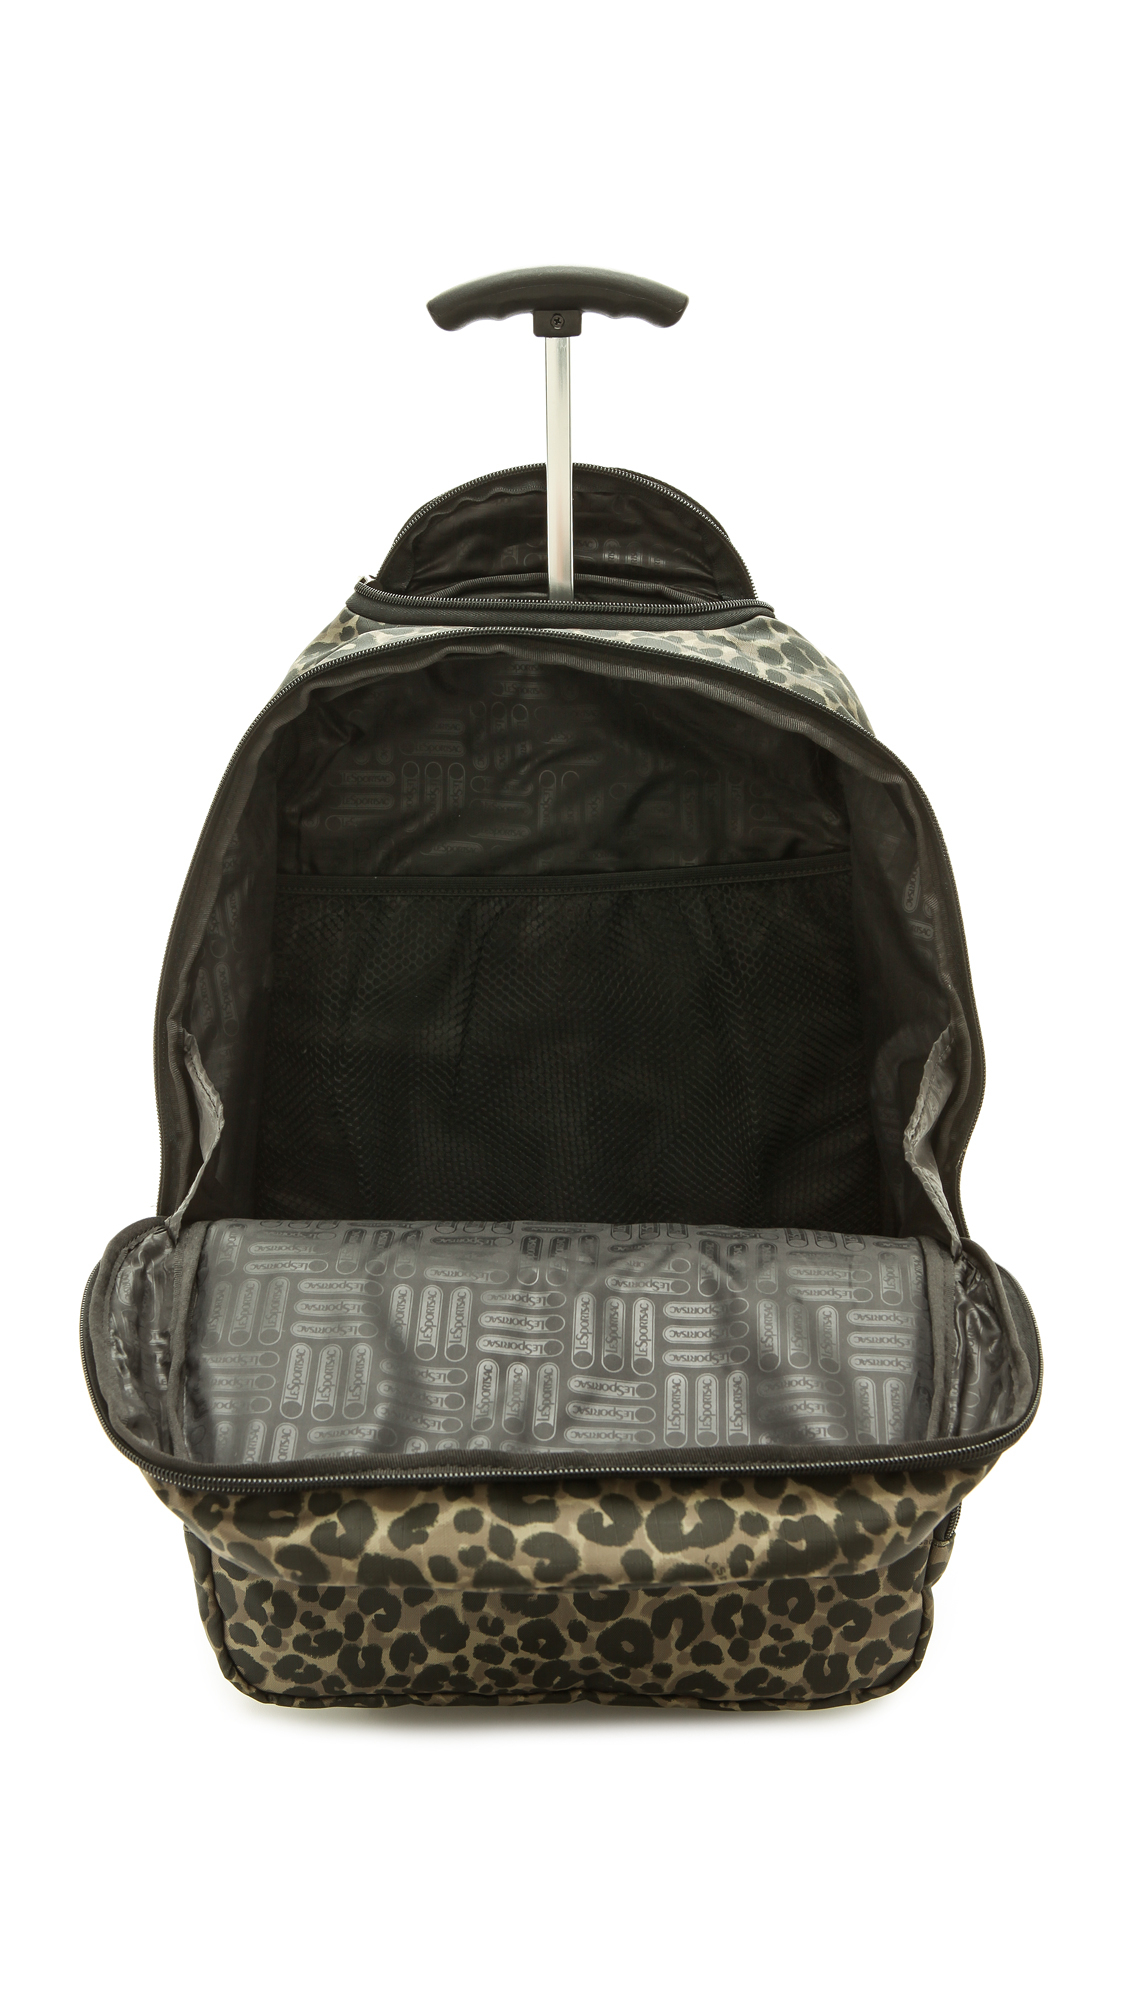 Lesportsac Rolling Backpack - Army Cheetah in Green | Lyst